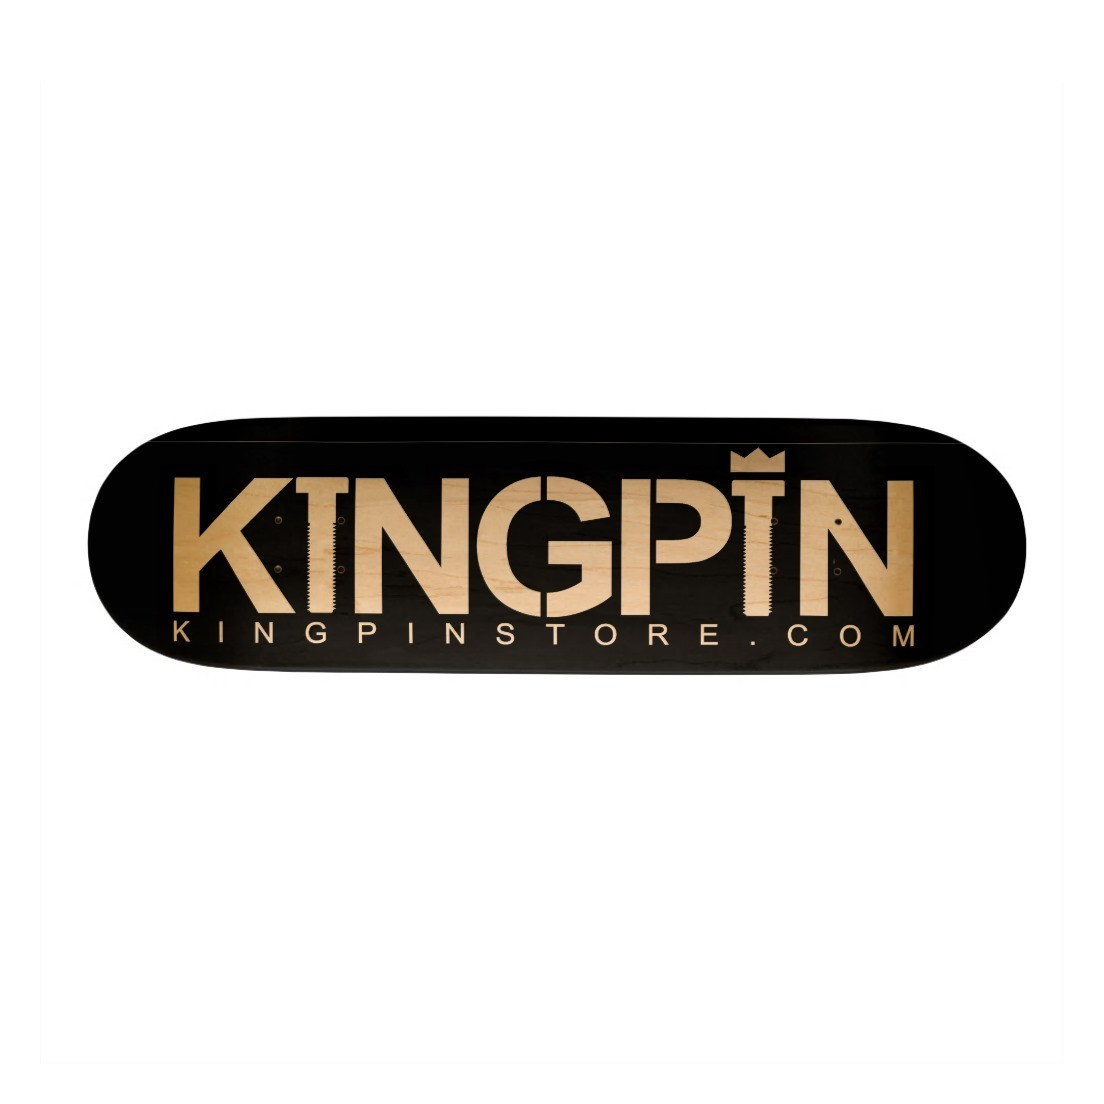 Kingpin Skate Supply Deck Woodgrain king pin skateboard GRIP FREE POST